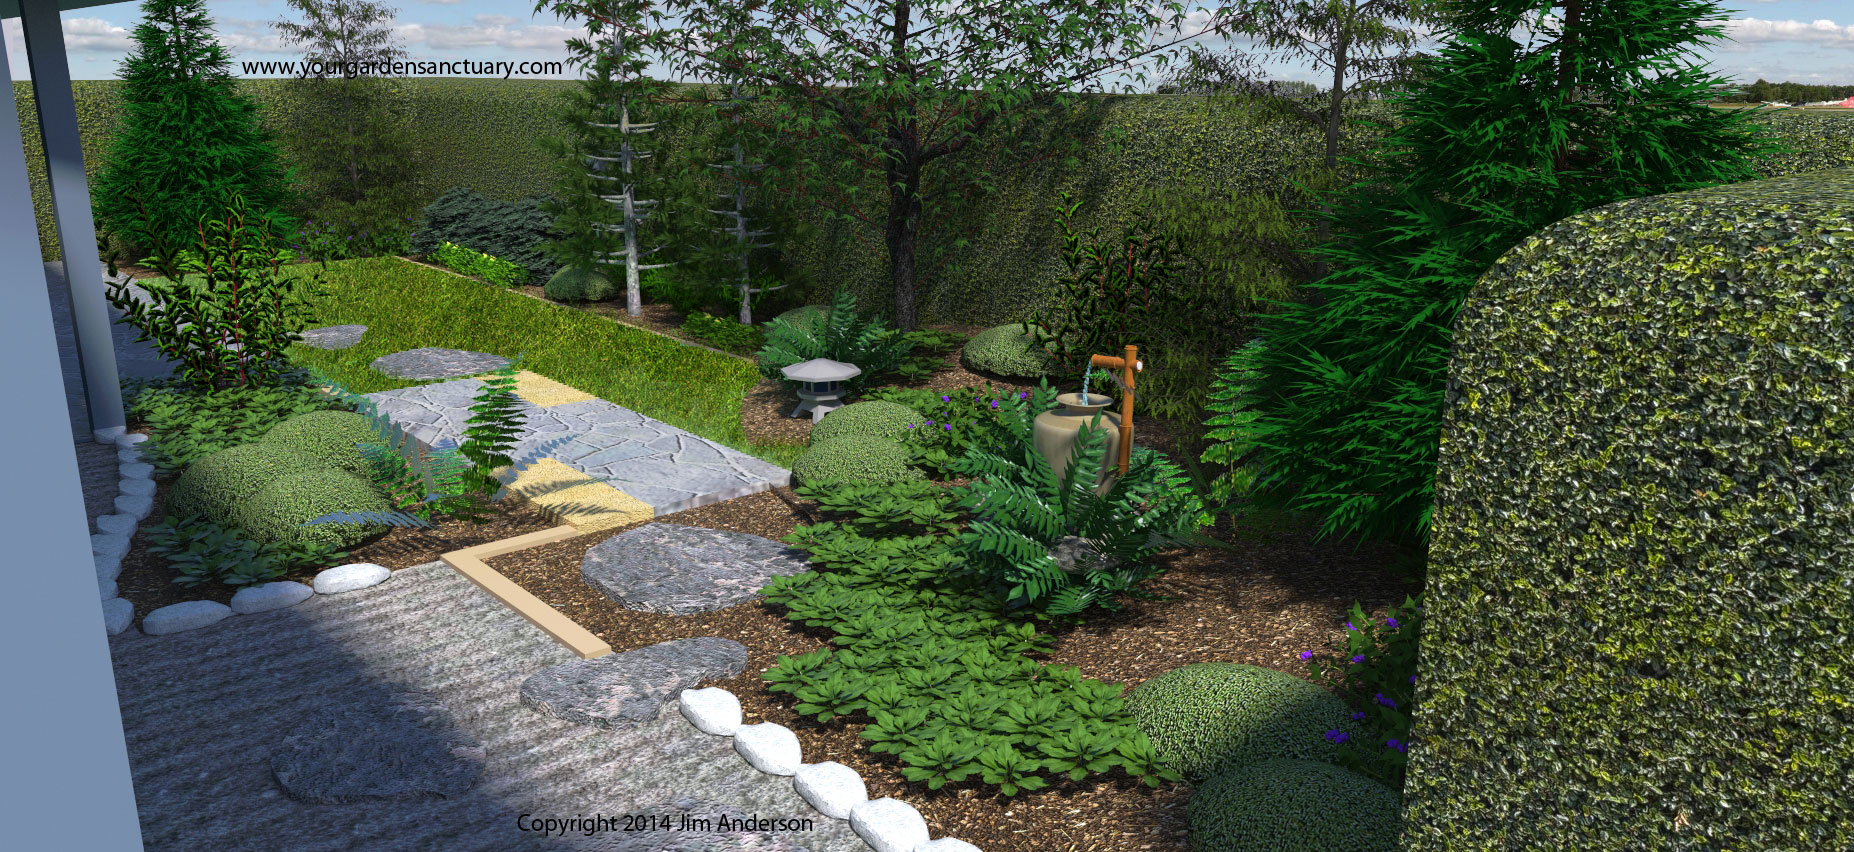 Adding a tsukubai to finish up our small backyard japanese for Japanese garden backyard designs